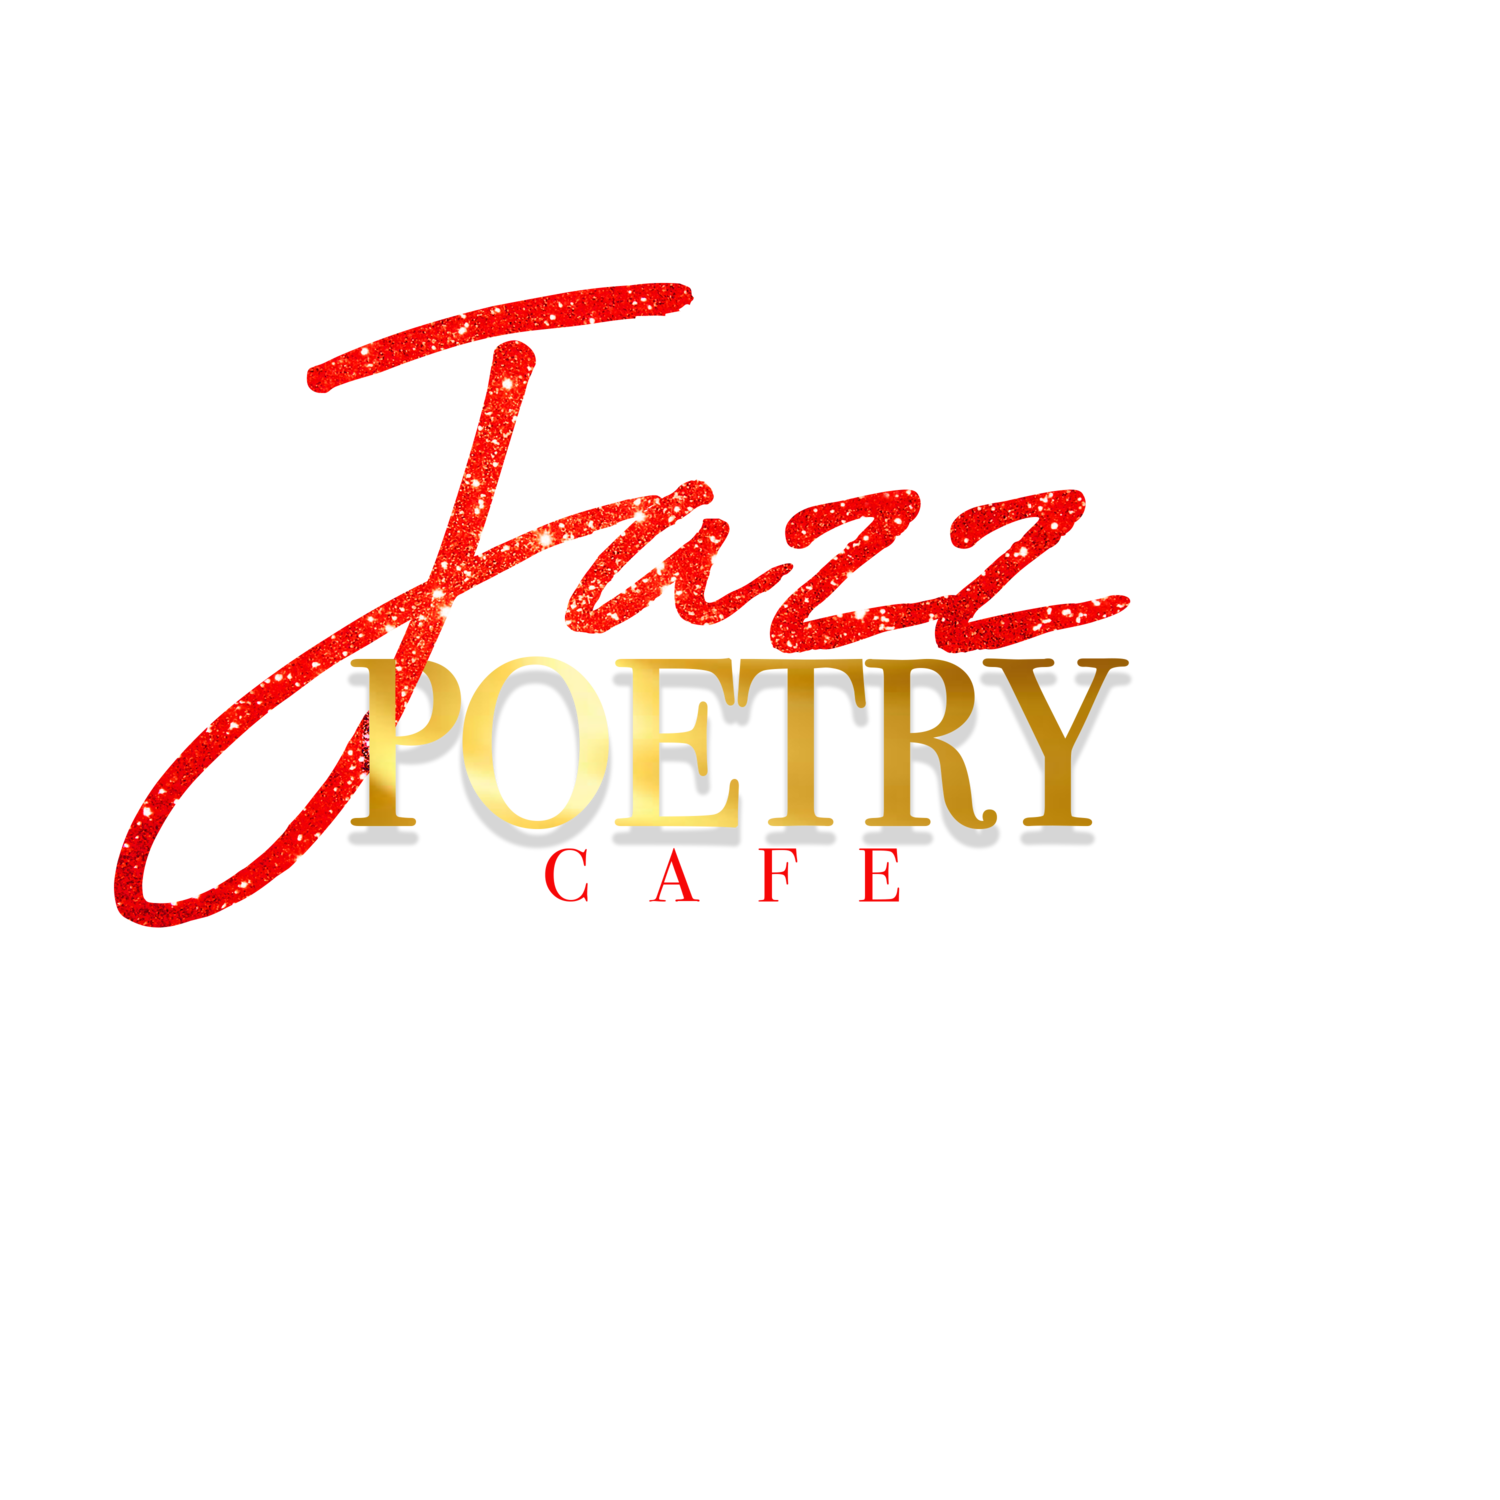 Jazz Poetry Cafe